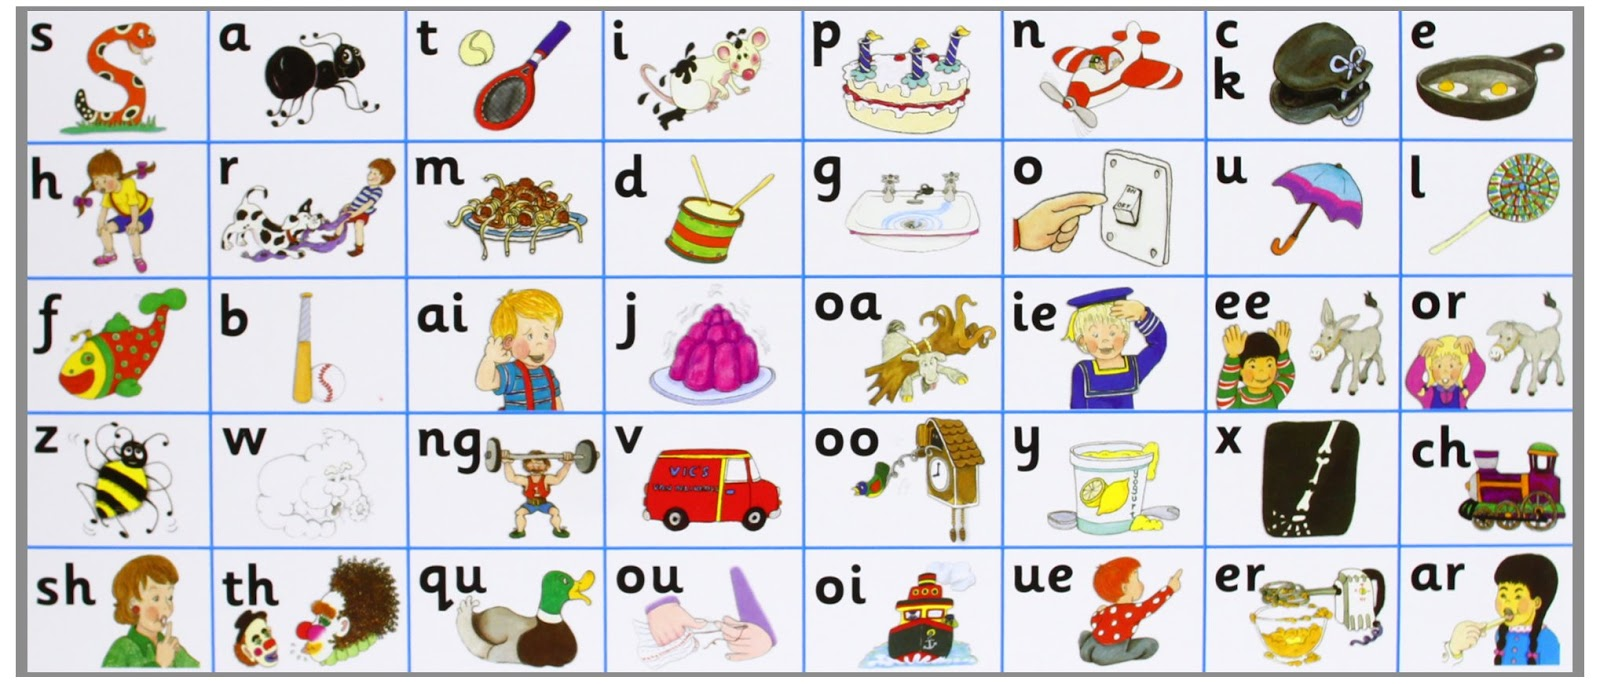 jolly phonics sounds video download